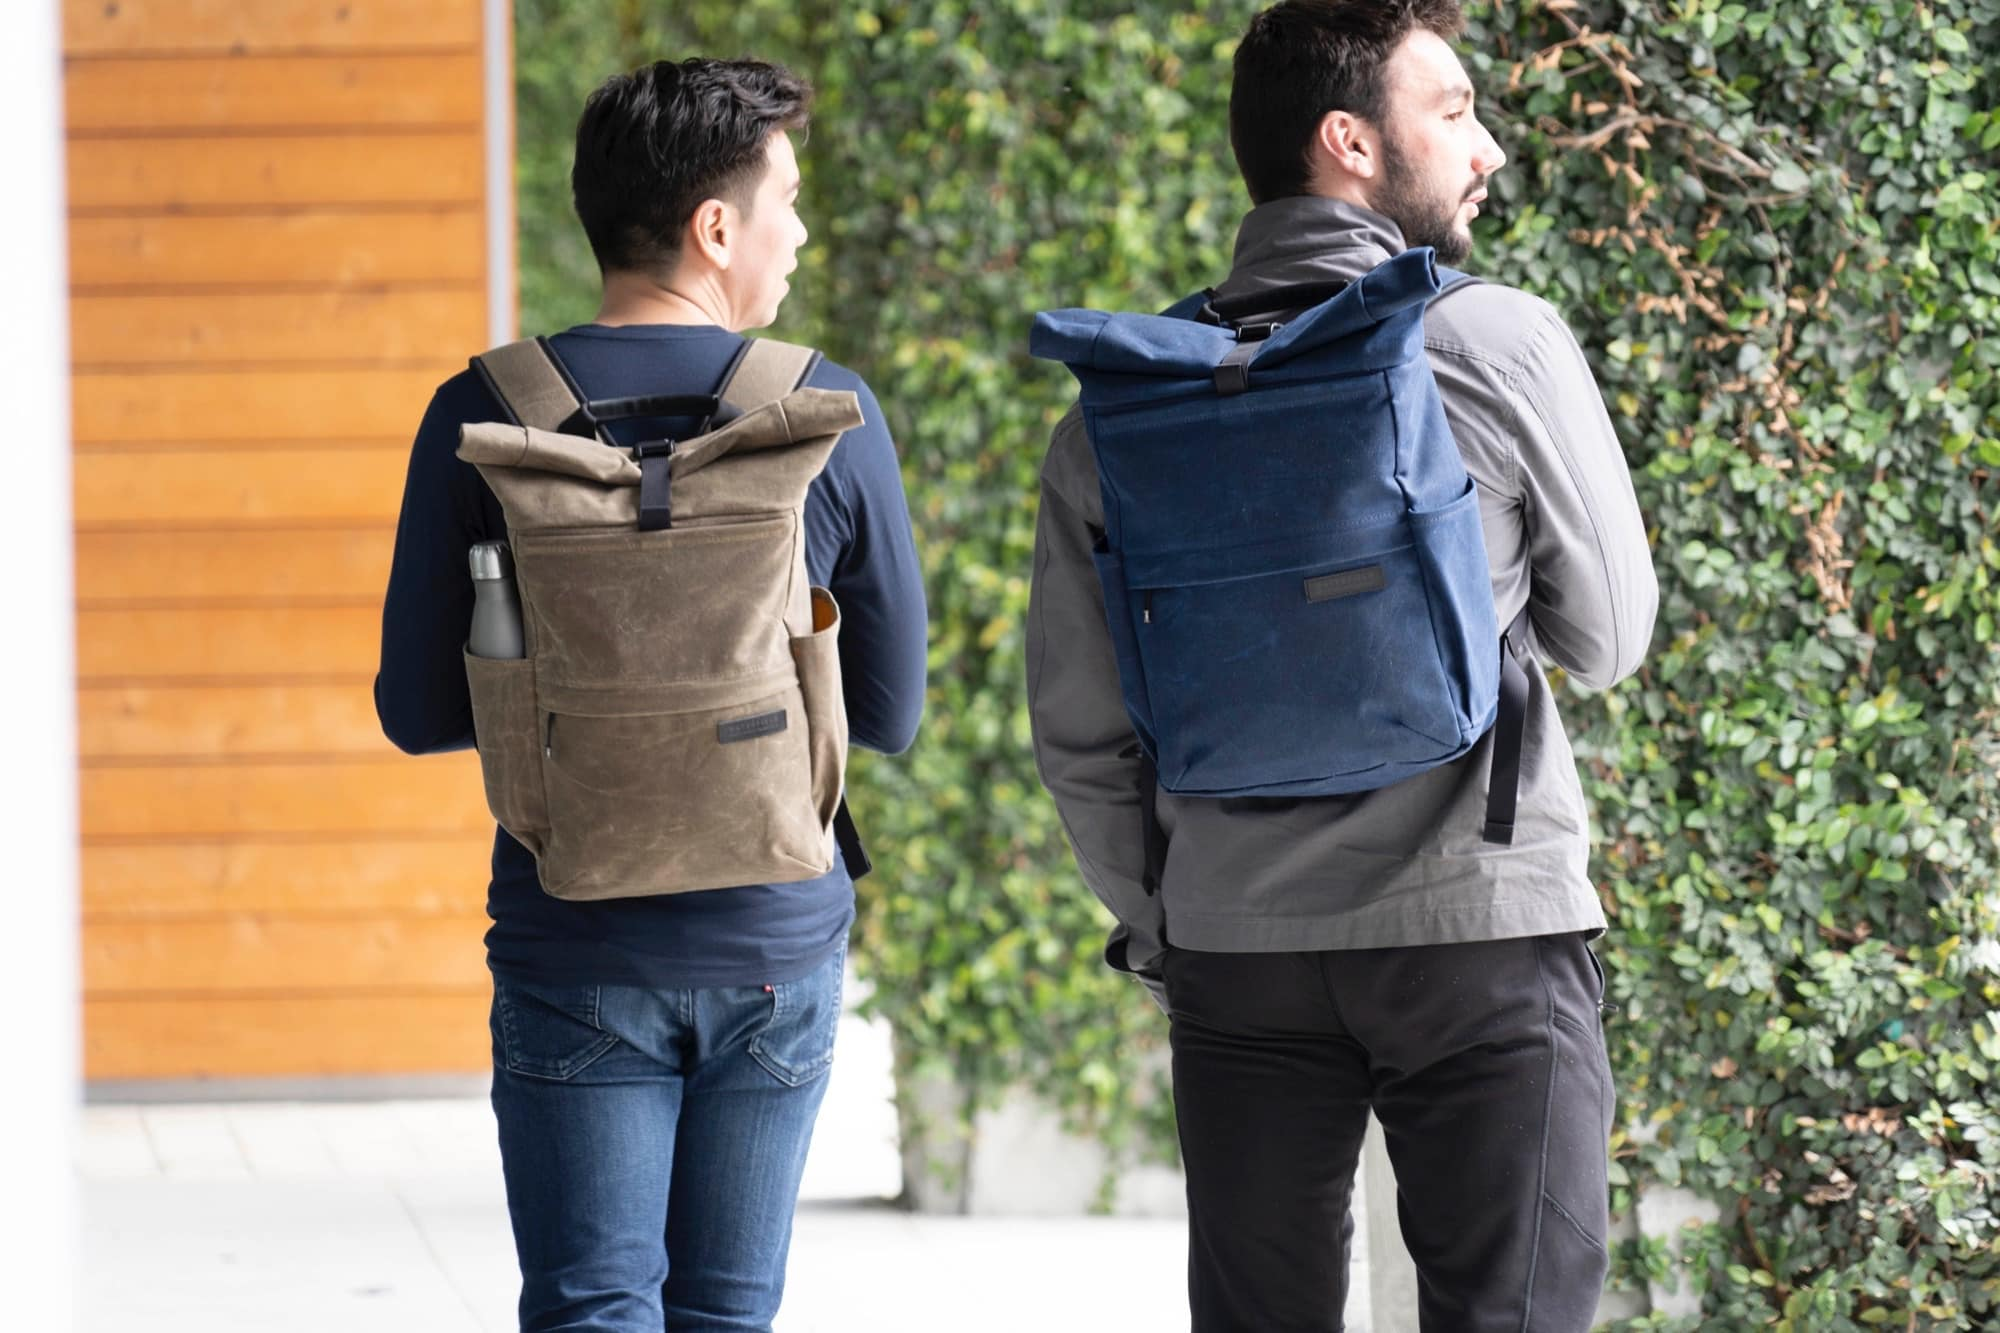 WaterField Designs' Tech Rolltop mixes good looks and utility.